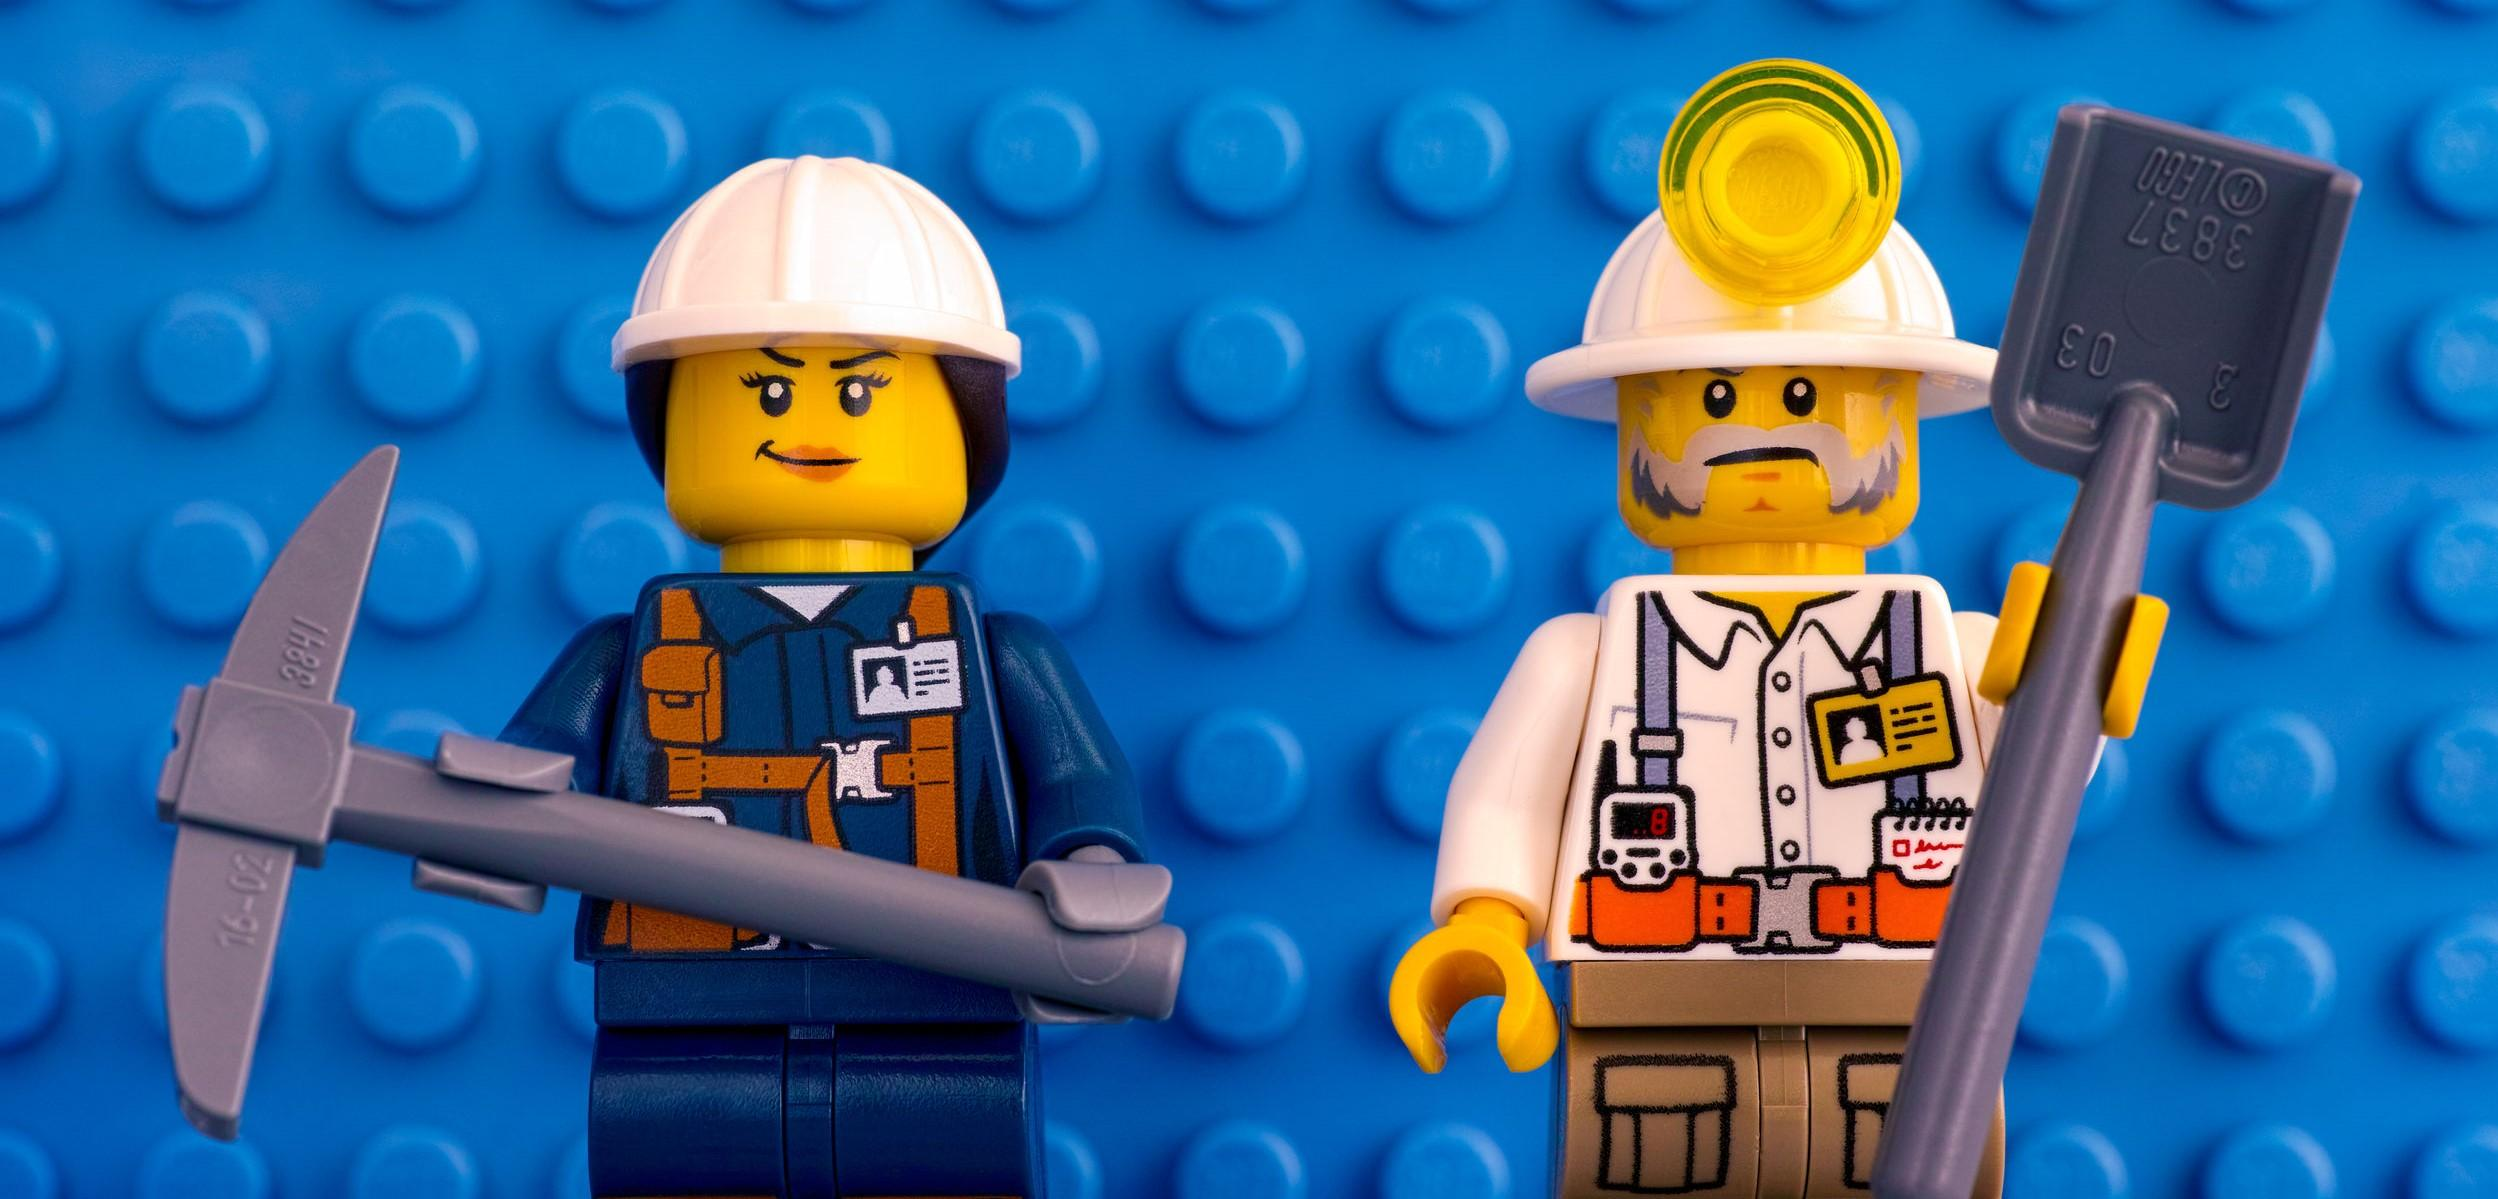 This picture shows two LEGO miners, who don't have much to do with fast weight loss, but look cool.